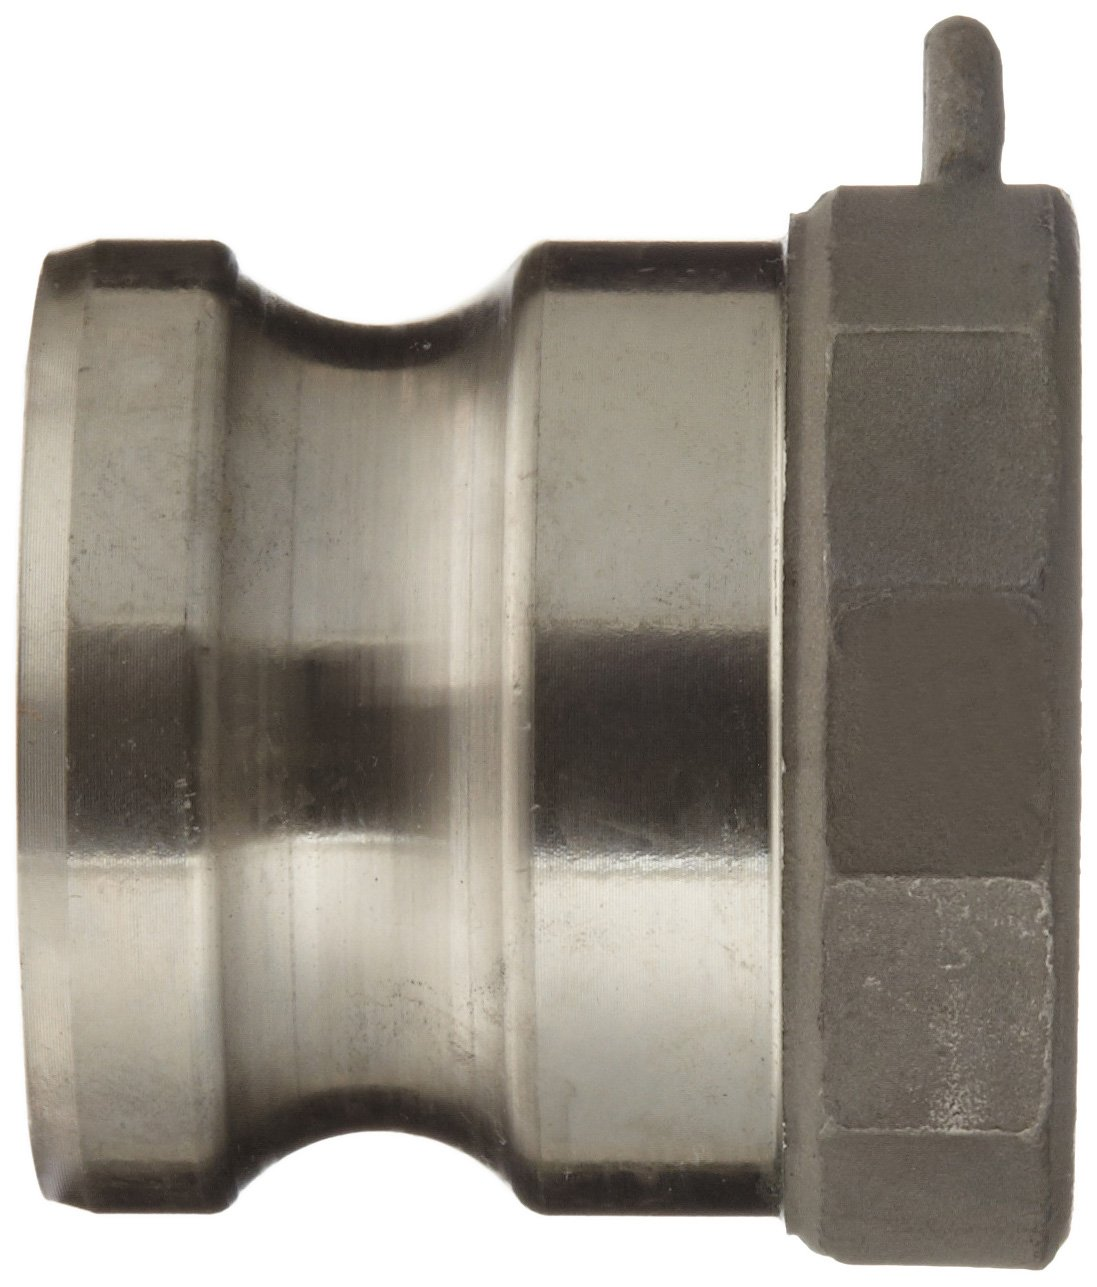 Dixon 300-A-SS Stainless Steel 316 Boss-Lock Type A Cam and Groove Hose Fitting 3 Plug x 3 NPT Female